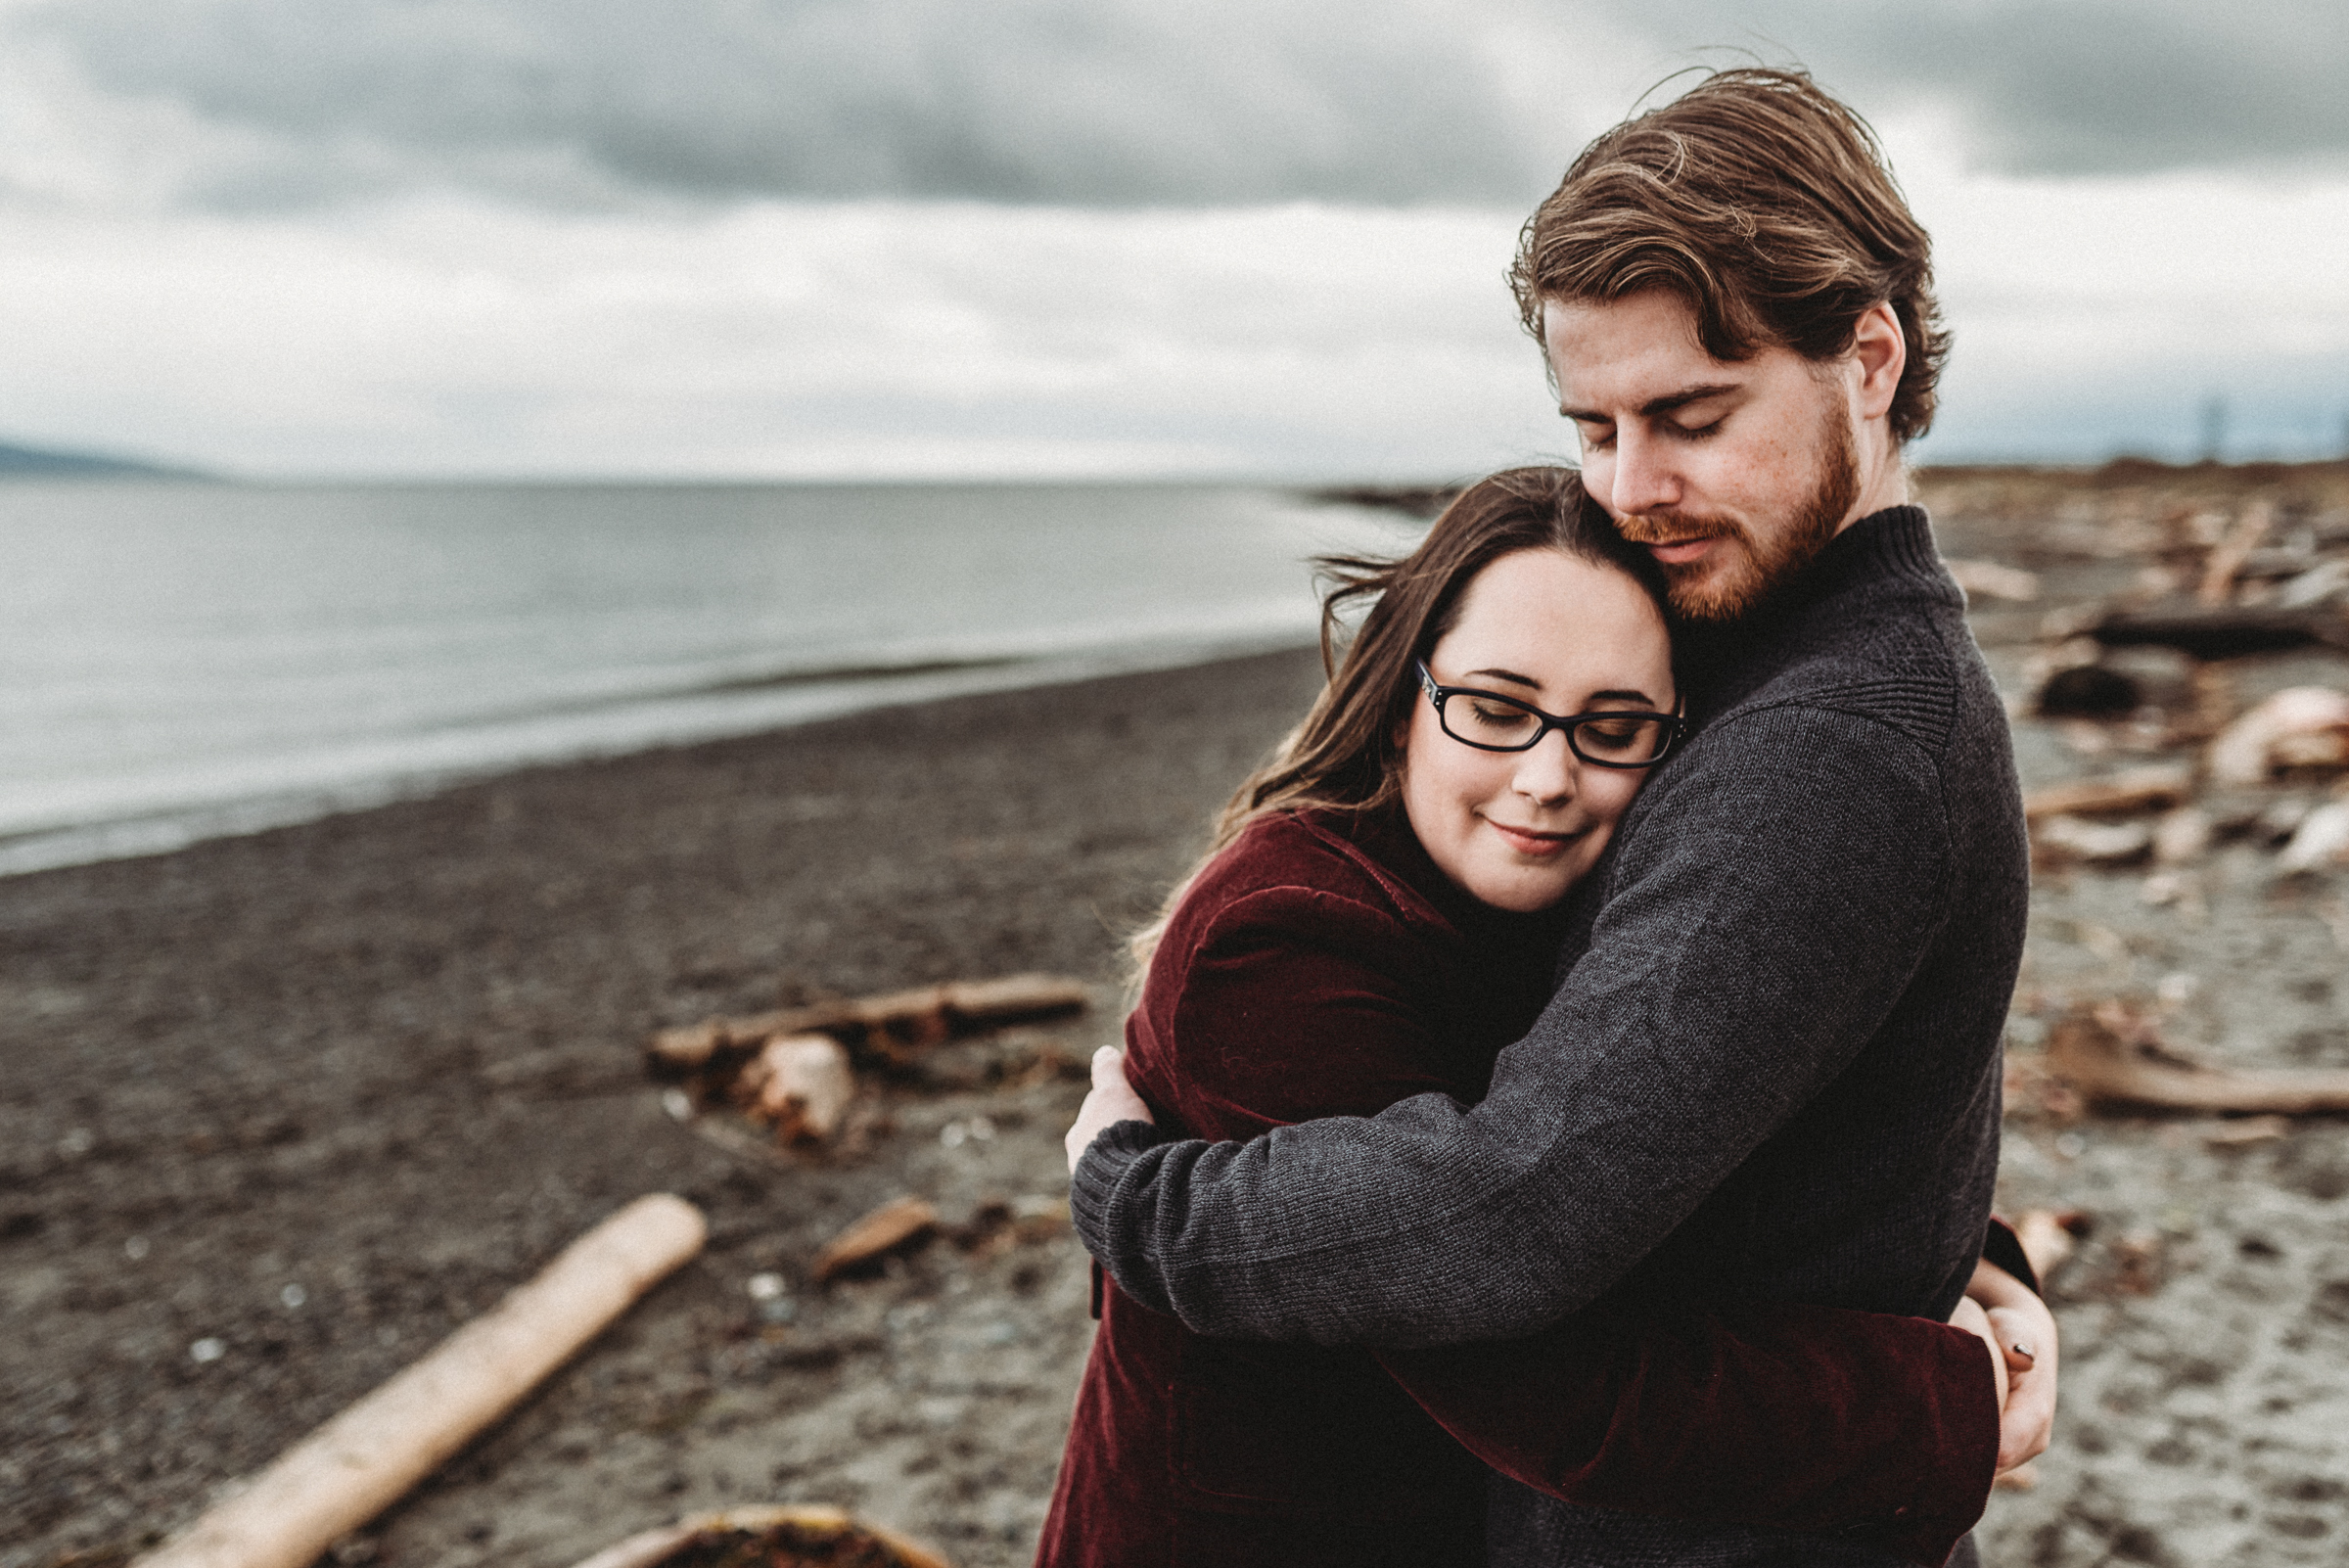 JEN + DAN // ISLAND VIEW BEACH ENGAGEMENT SESSION